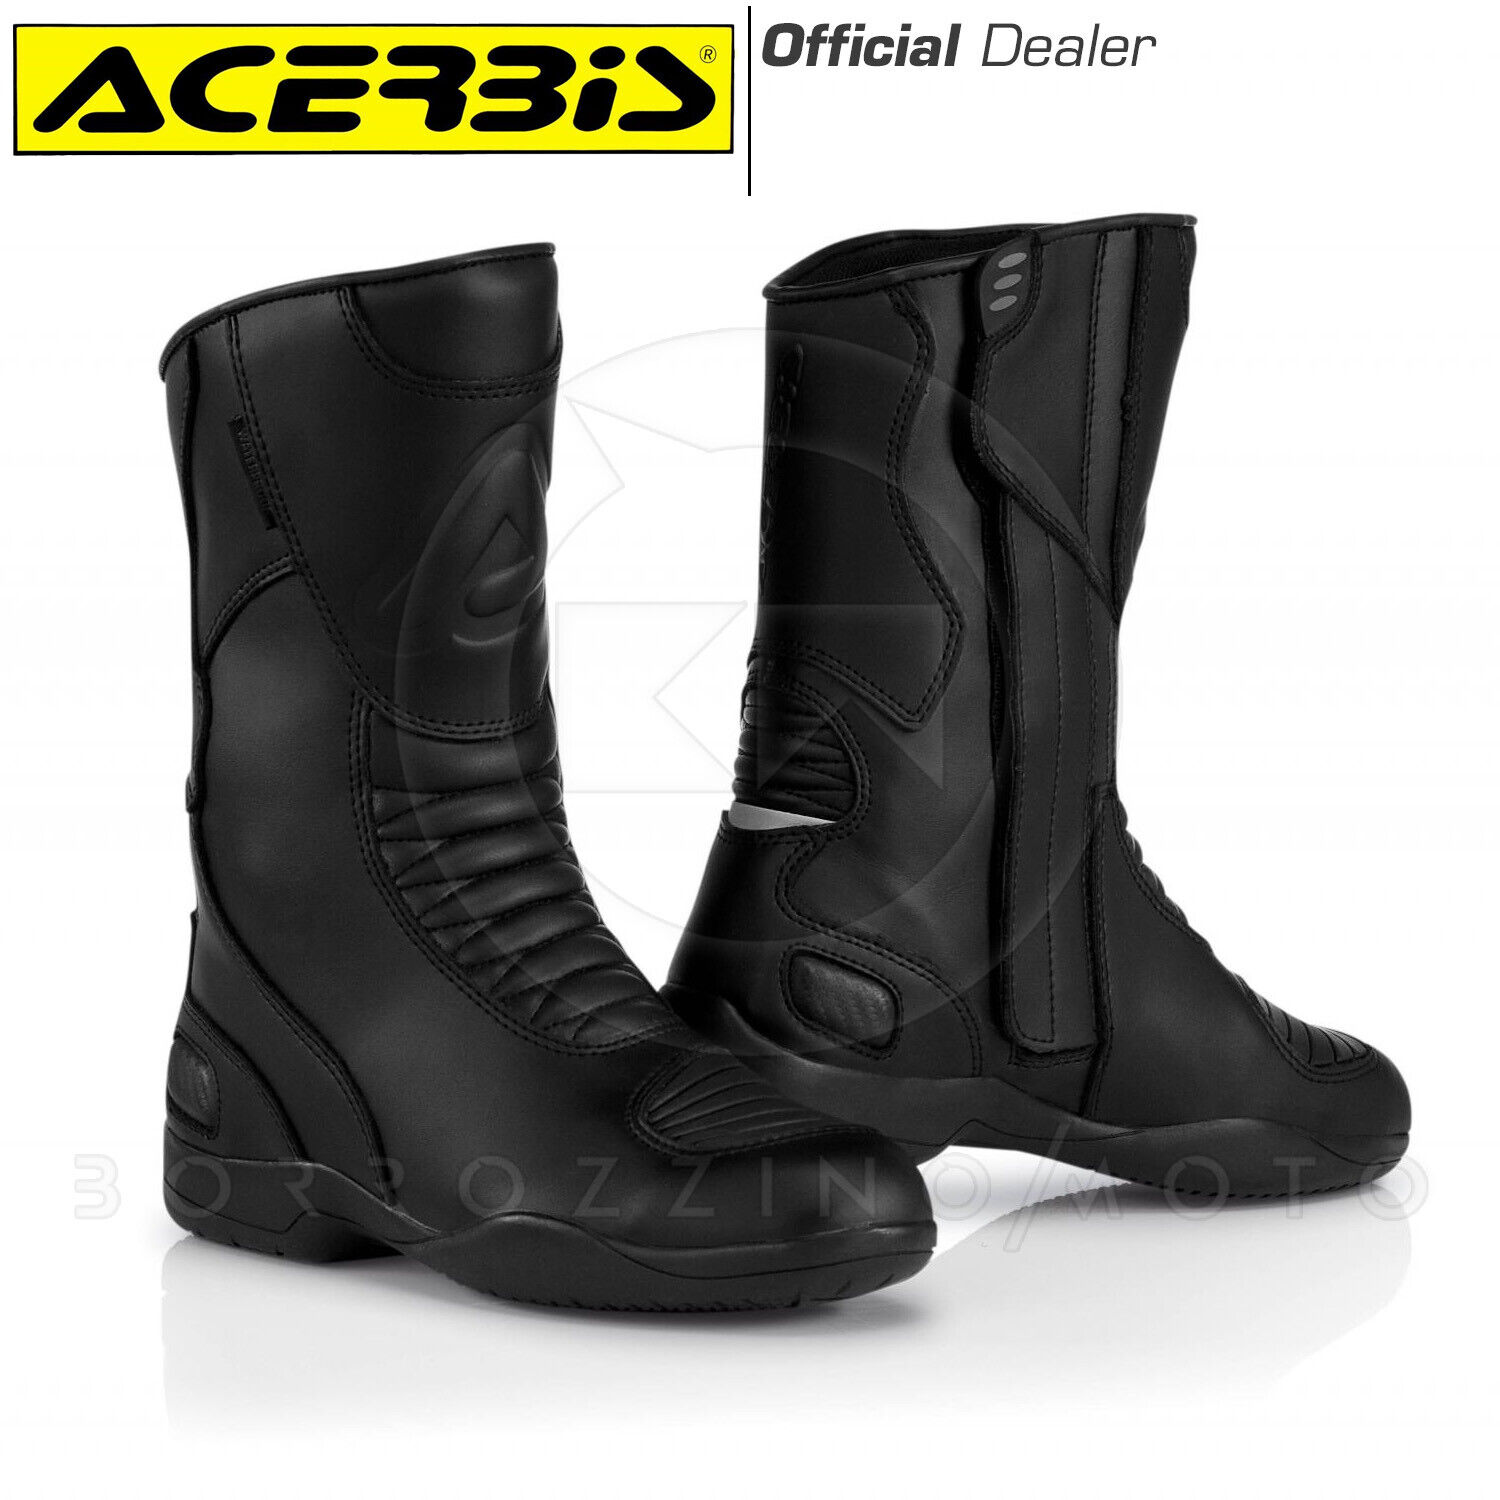 Boots Boots Motorcycle Touring Road Leather Jurby Acerbis Black Size 41